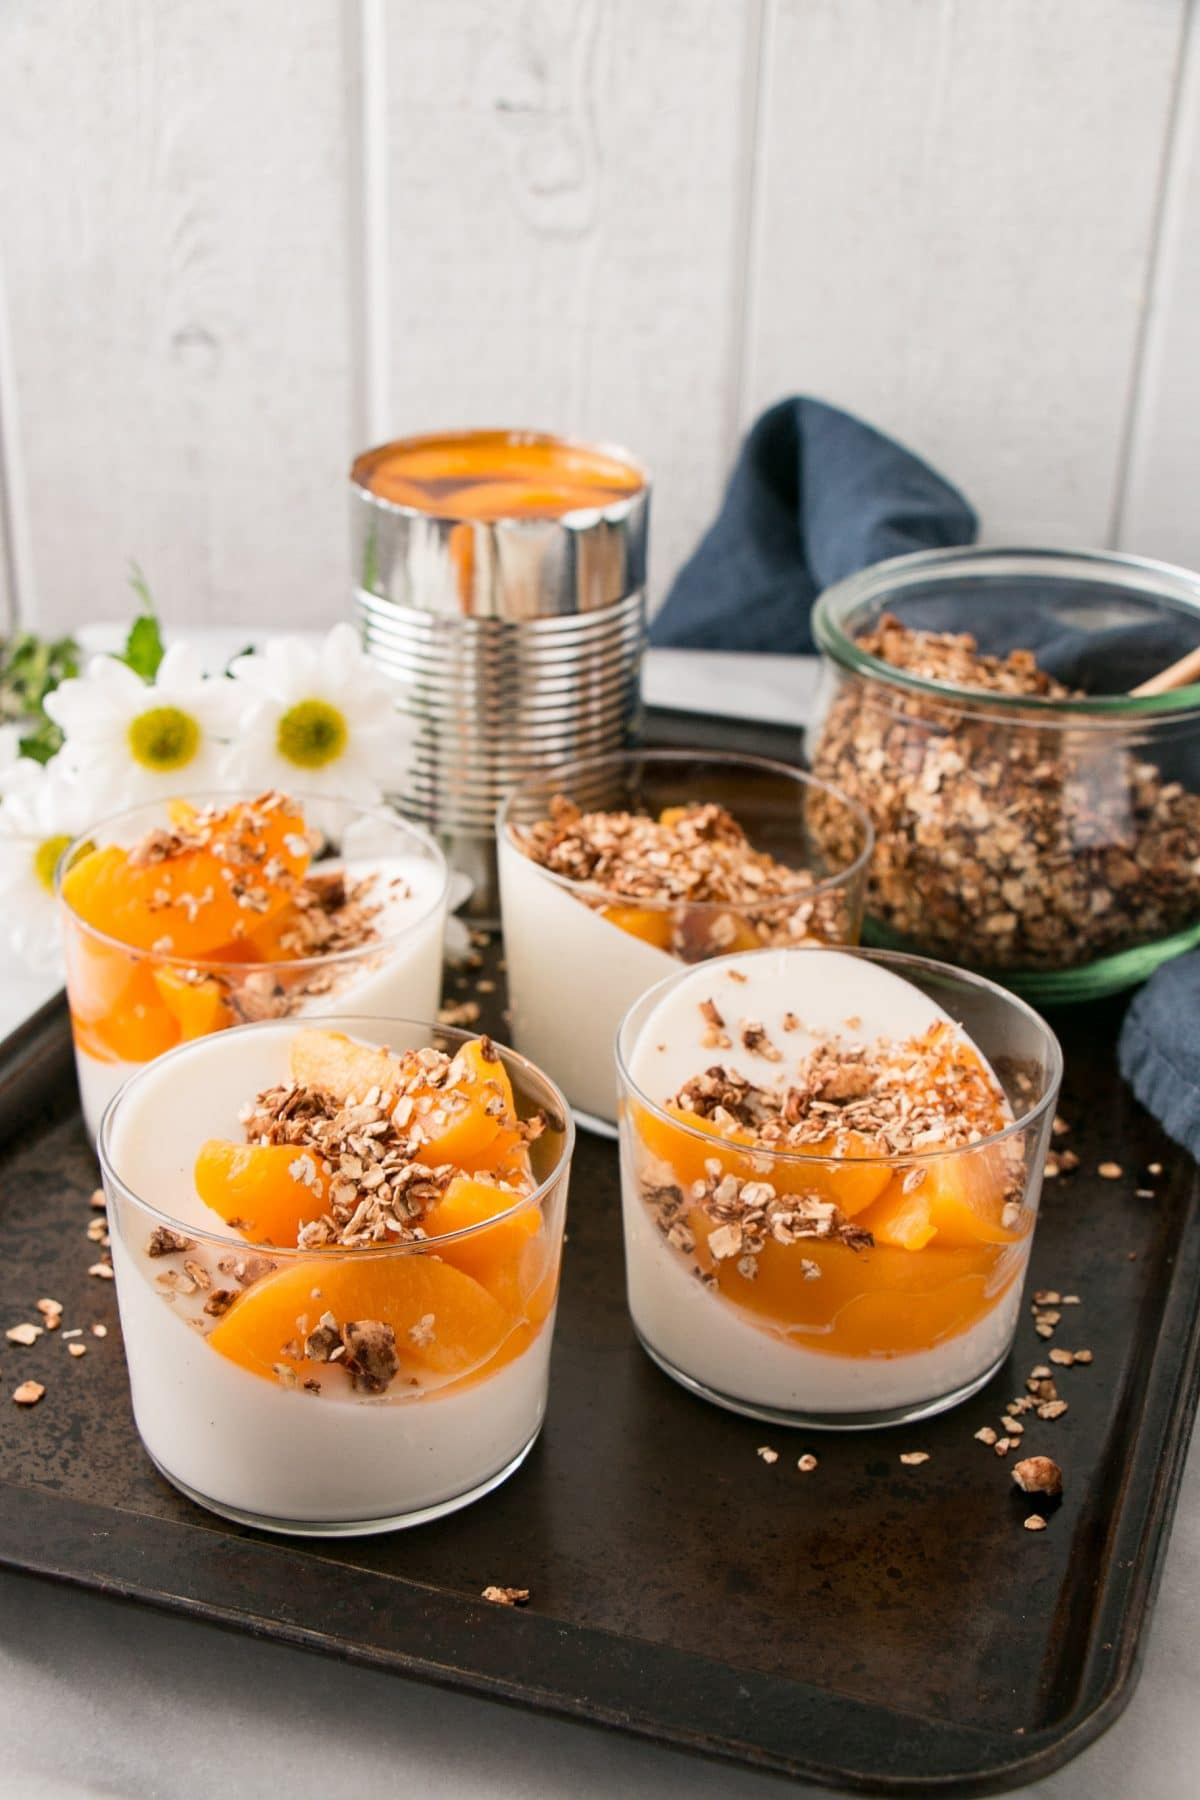 Peach Yogurt Panna Cotta with Cinnamon Granola is a dreamy make ahead breakfast that is perfect for entertaining, Mother's Day, Valentine's Day or anytime you need a special treat for breakfast! #ad #breakfast #mothersday #valentinesday #pannacotta